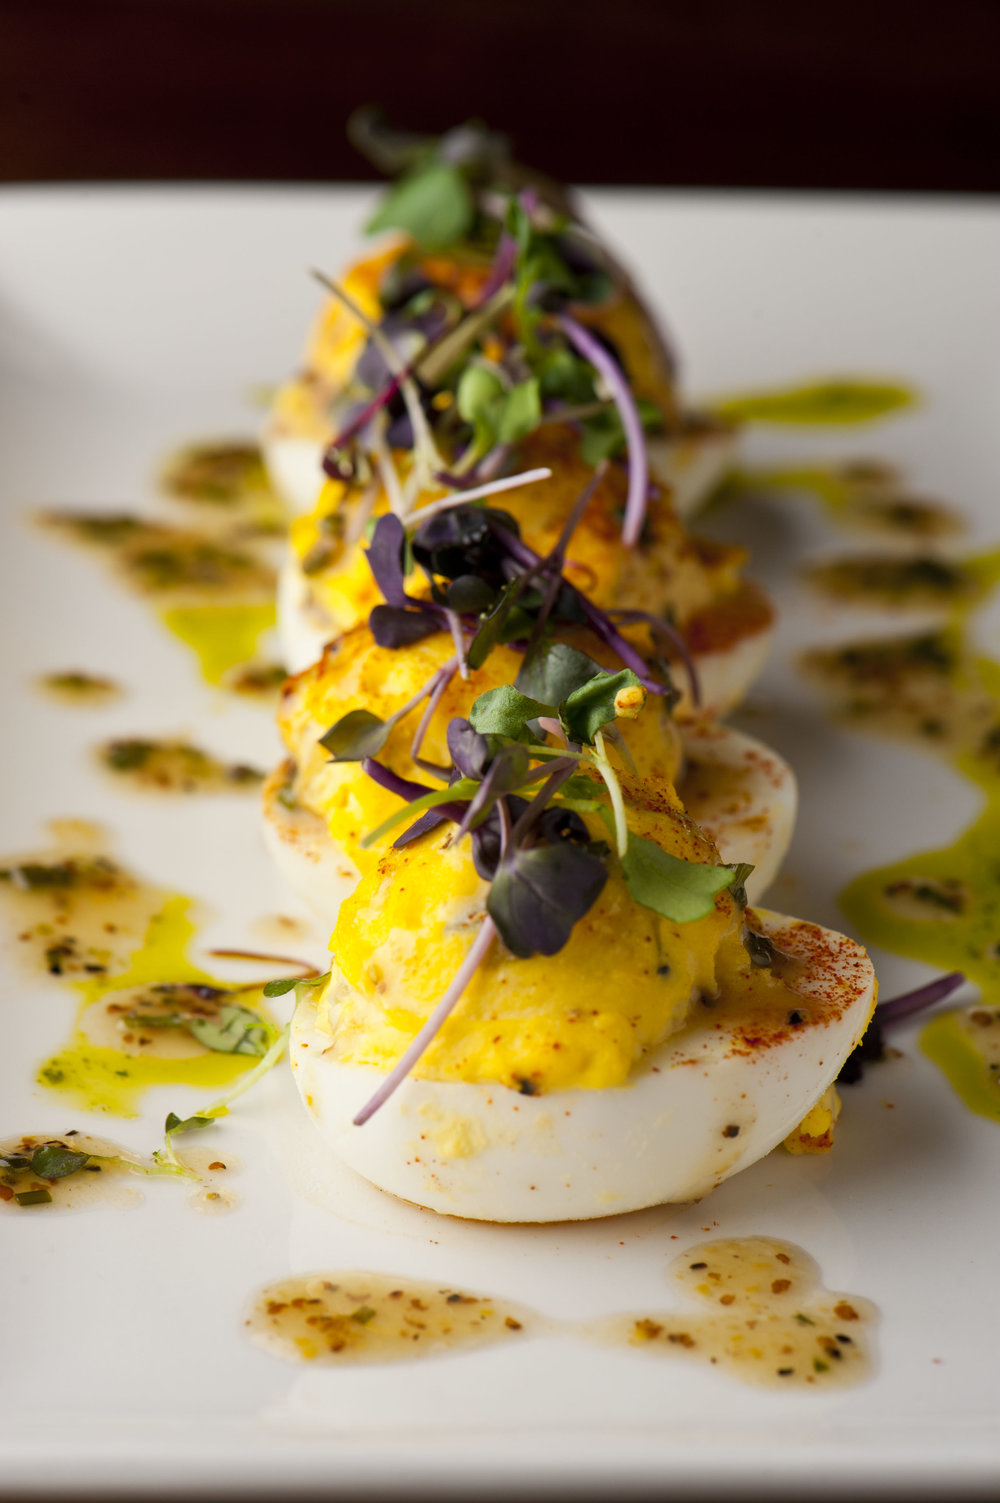 Del Fresco's Grille's truffle-chive deviled eggs are one of several signature brunch dishes available on Easter.